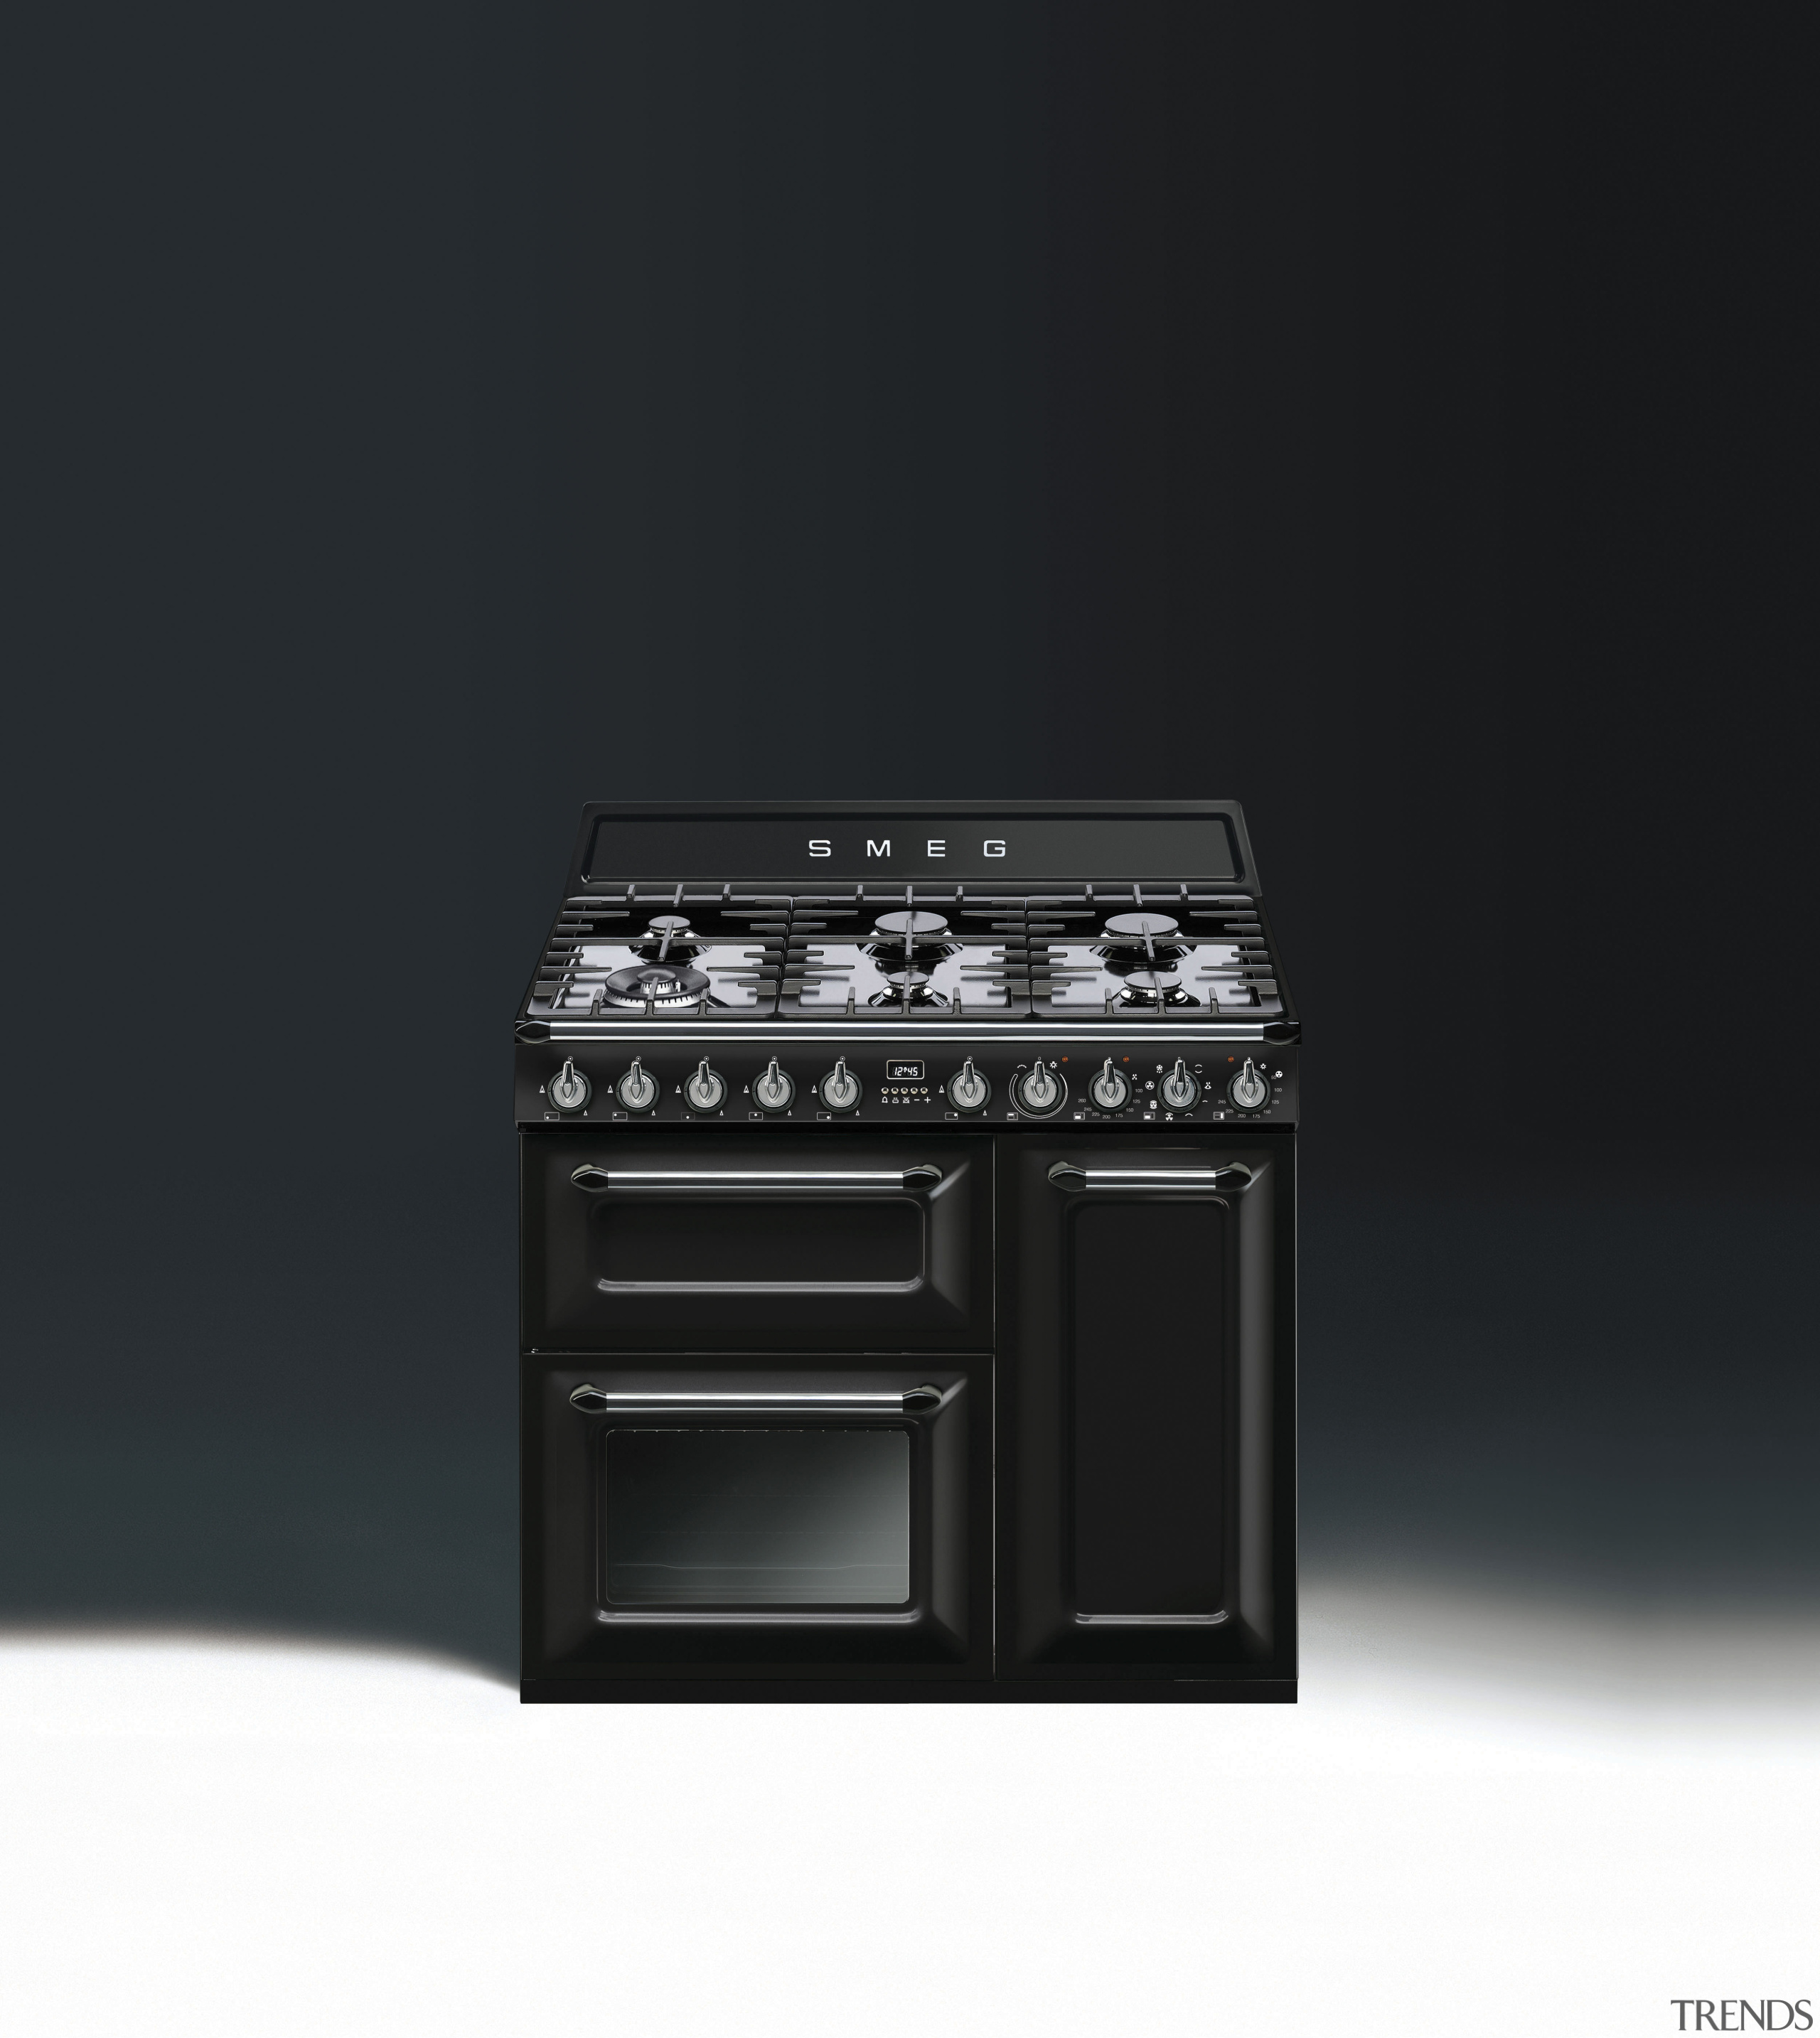 The 90cm-wide Victoria is also available in an electronic instrument, electronics, gas stove, home appliance, product, product design, black